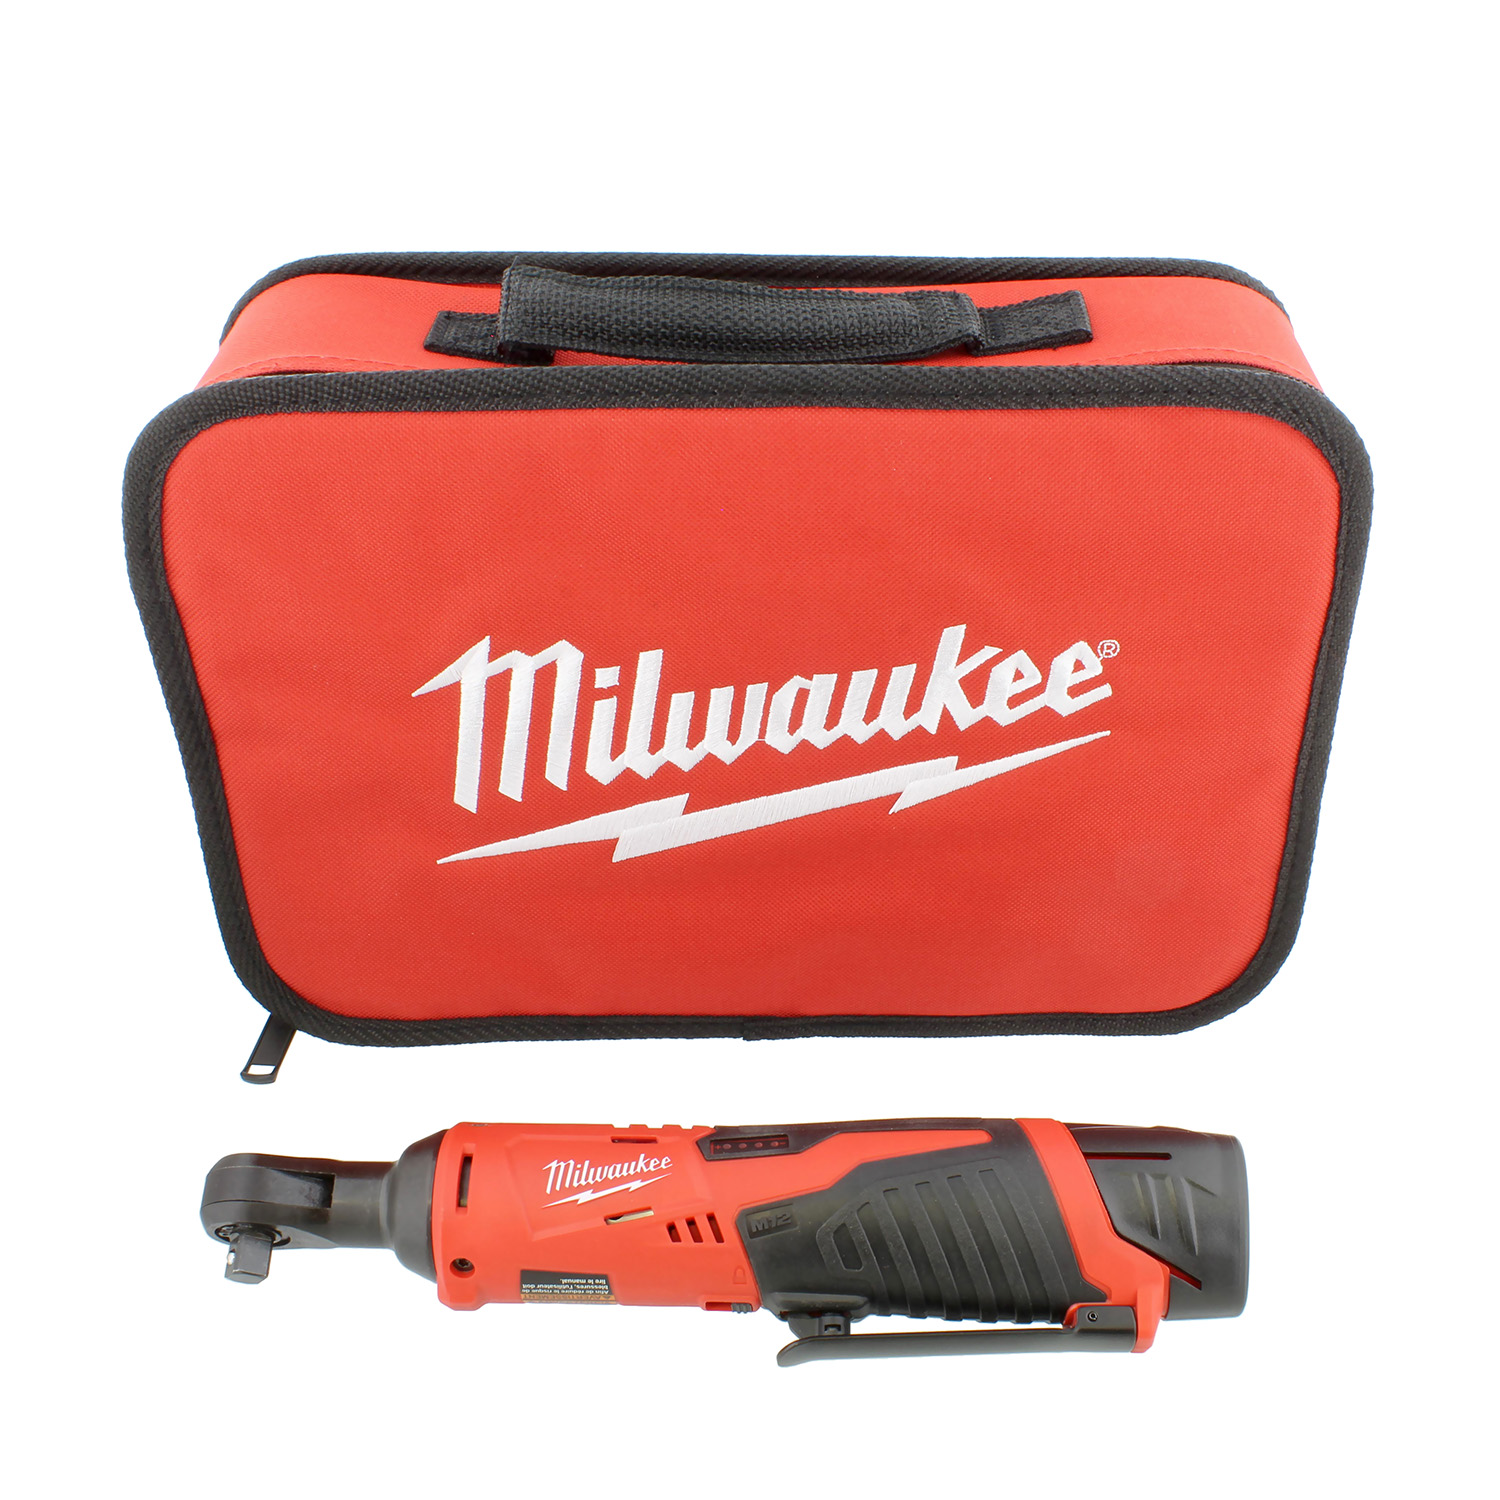 "Milwaukee 2457-21 3/8"" Inch Cordless M12 Lithium-Ion Ratchet Kit"